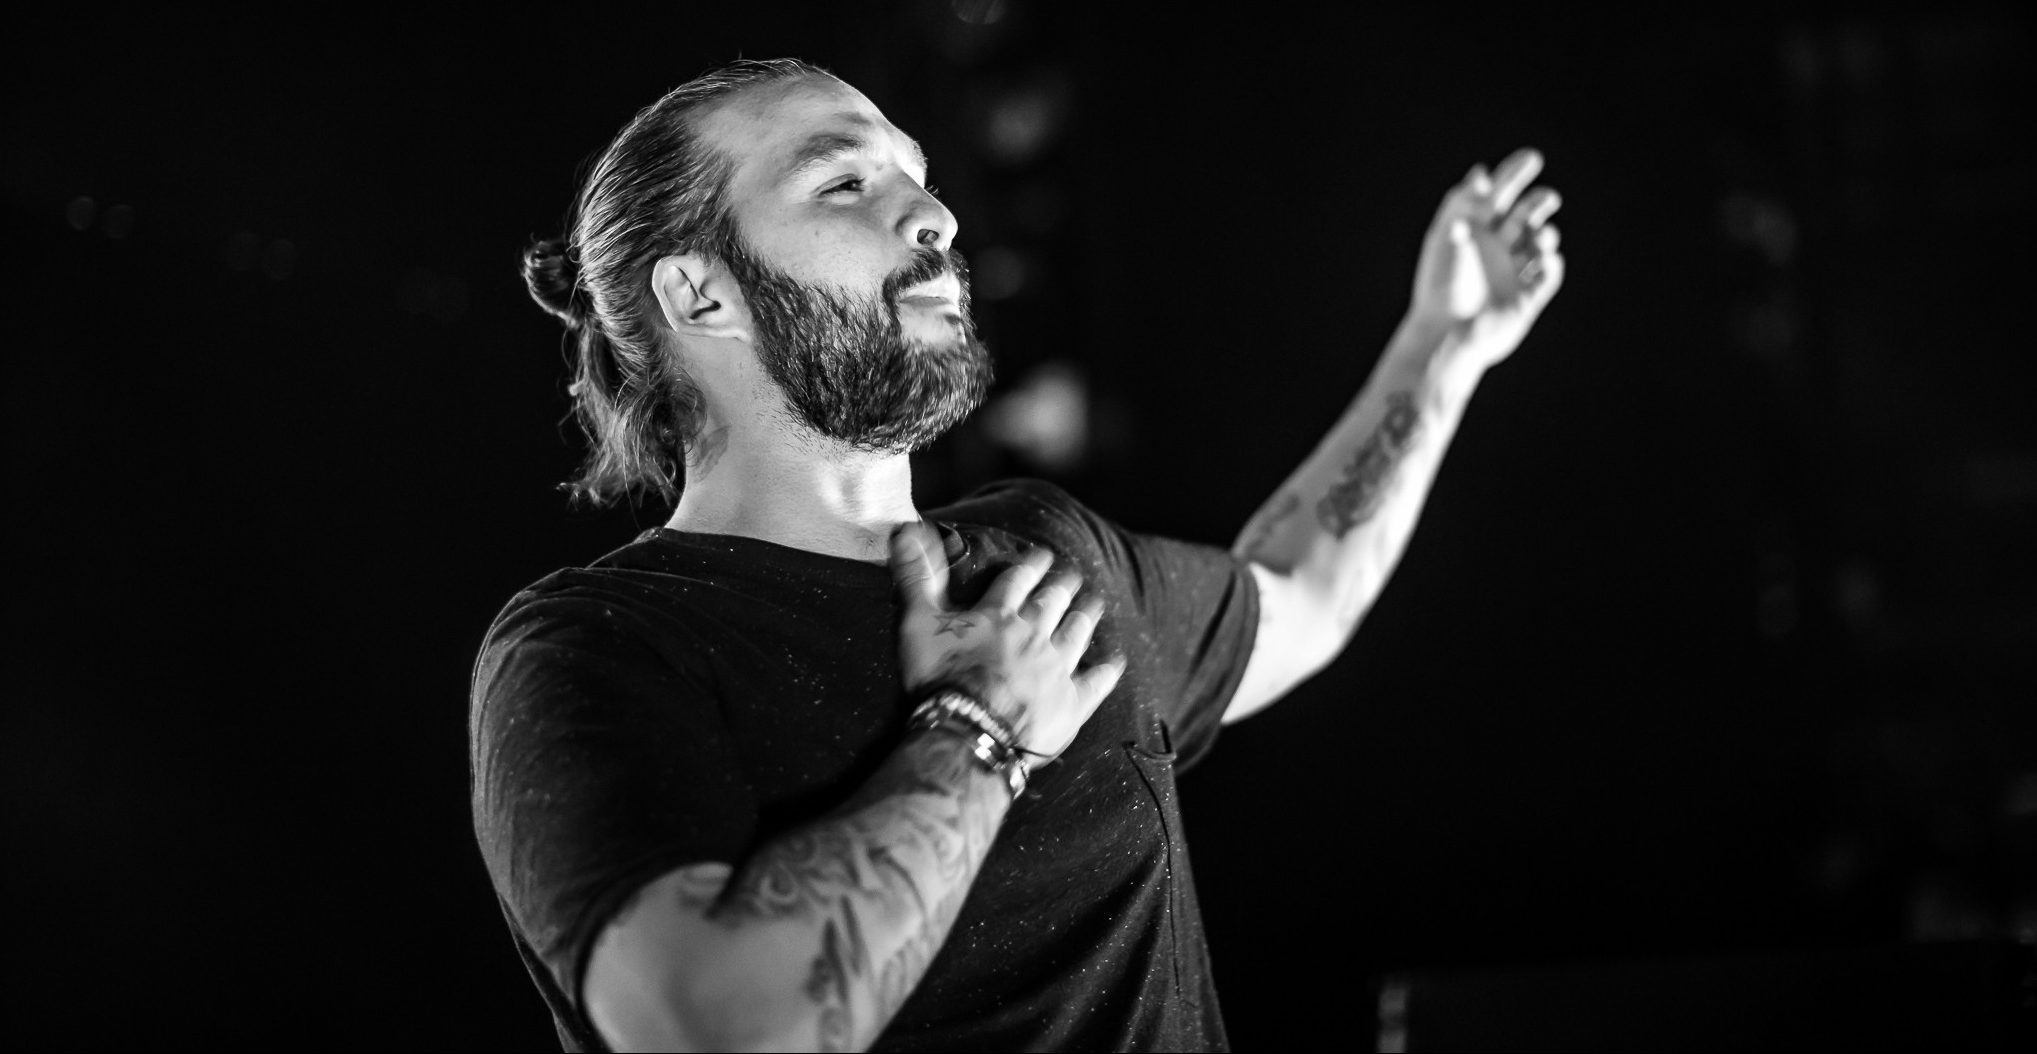 Steve Angello all life pass